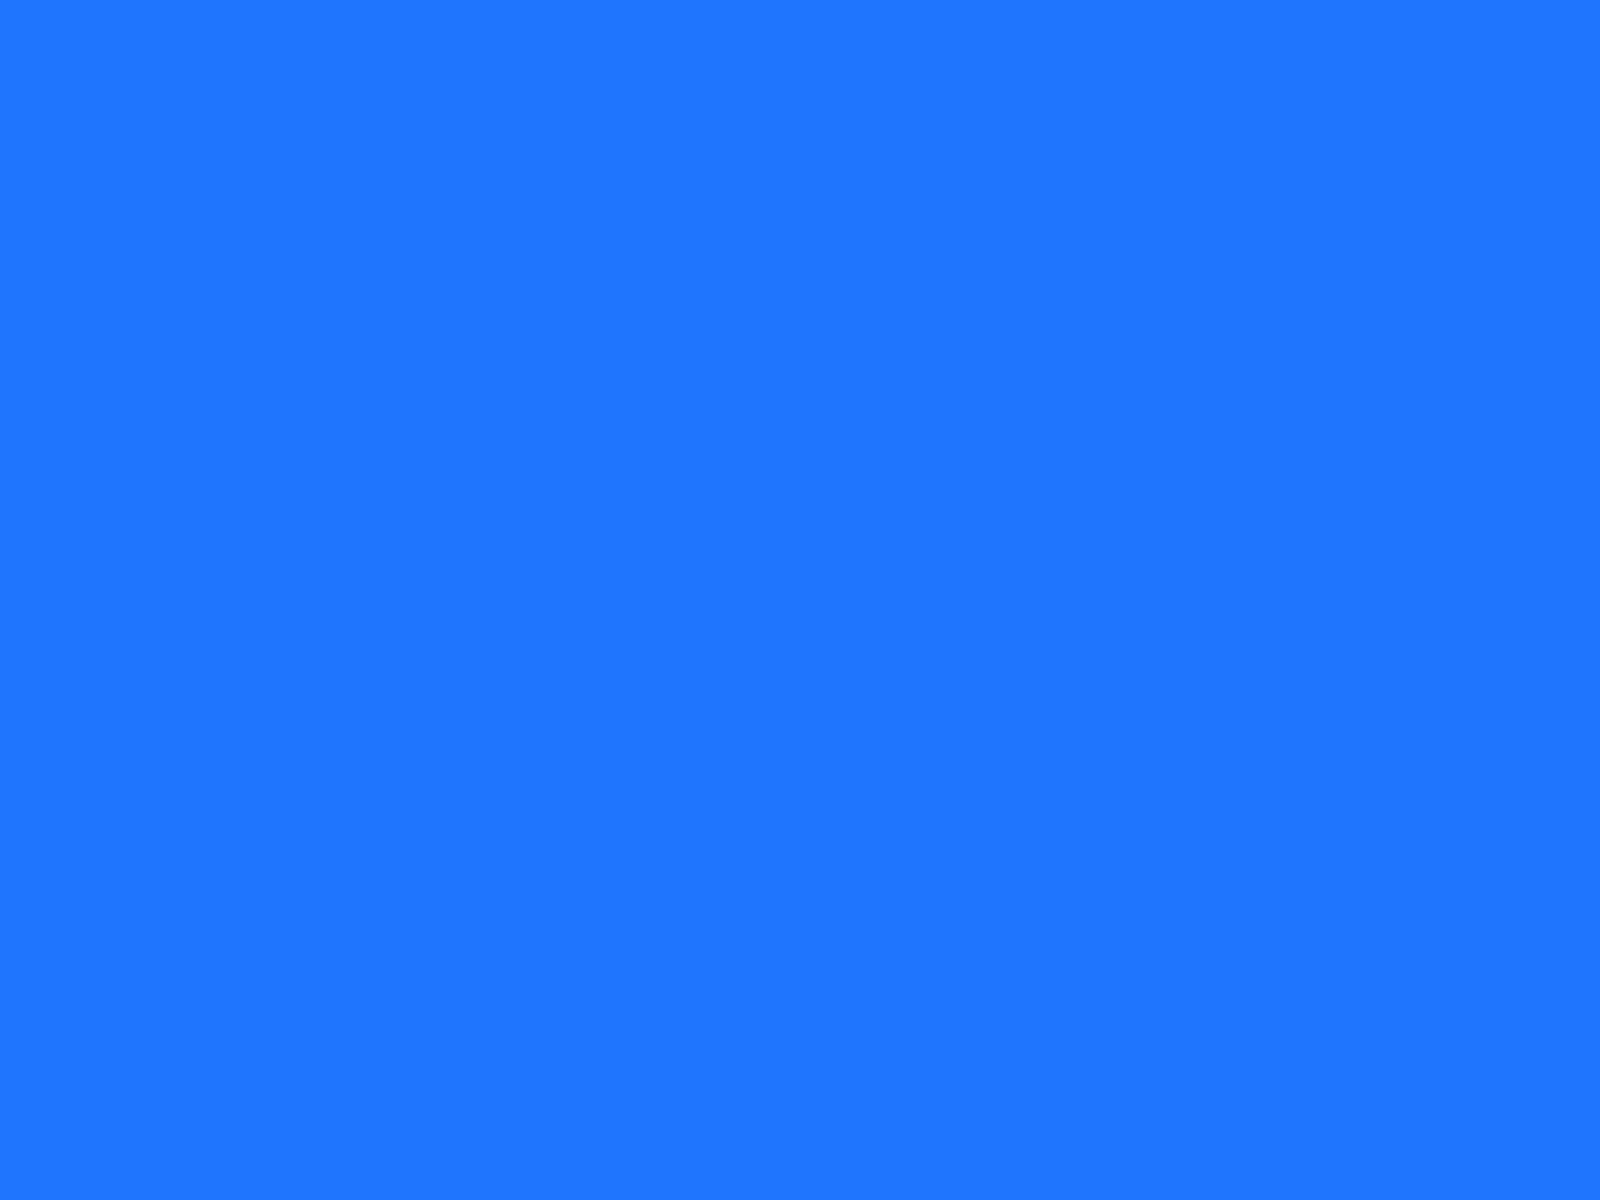 1600x1200 Blue Crayola Solid Color Background